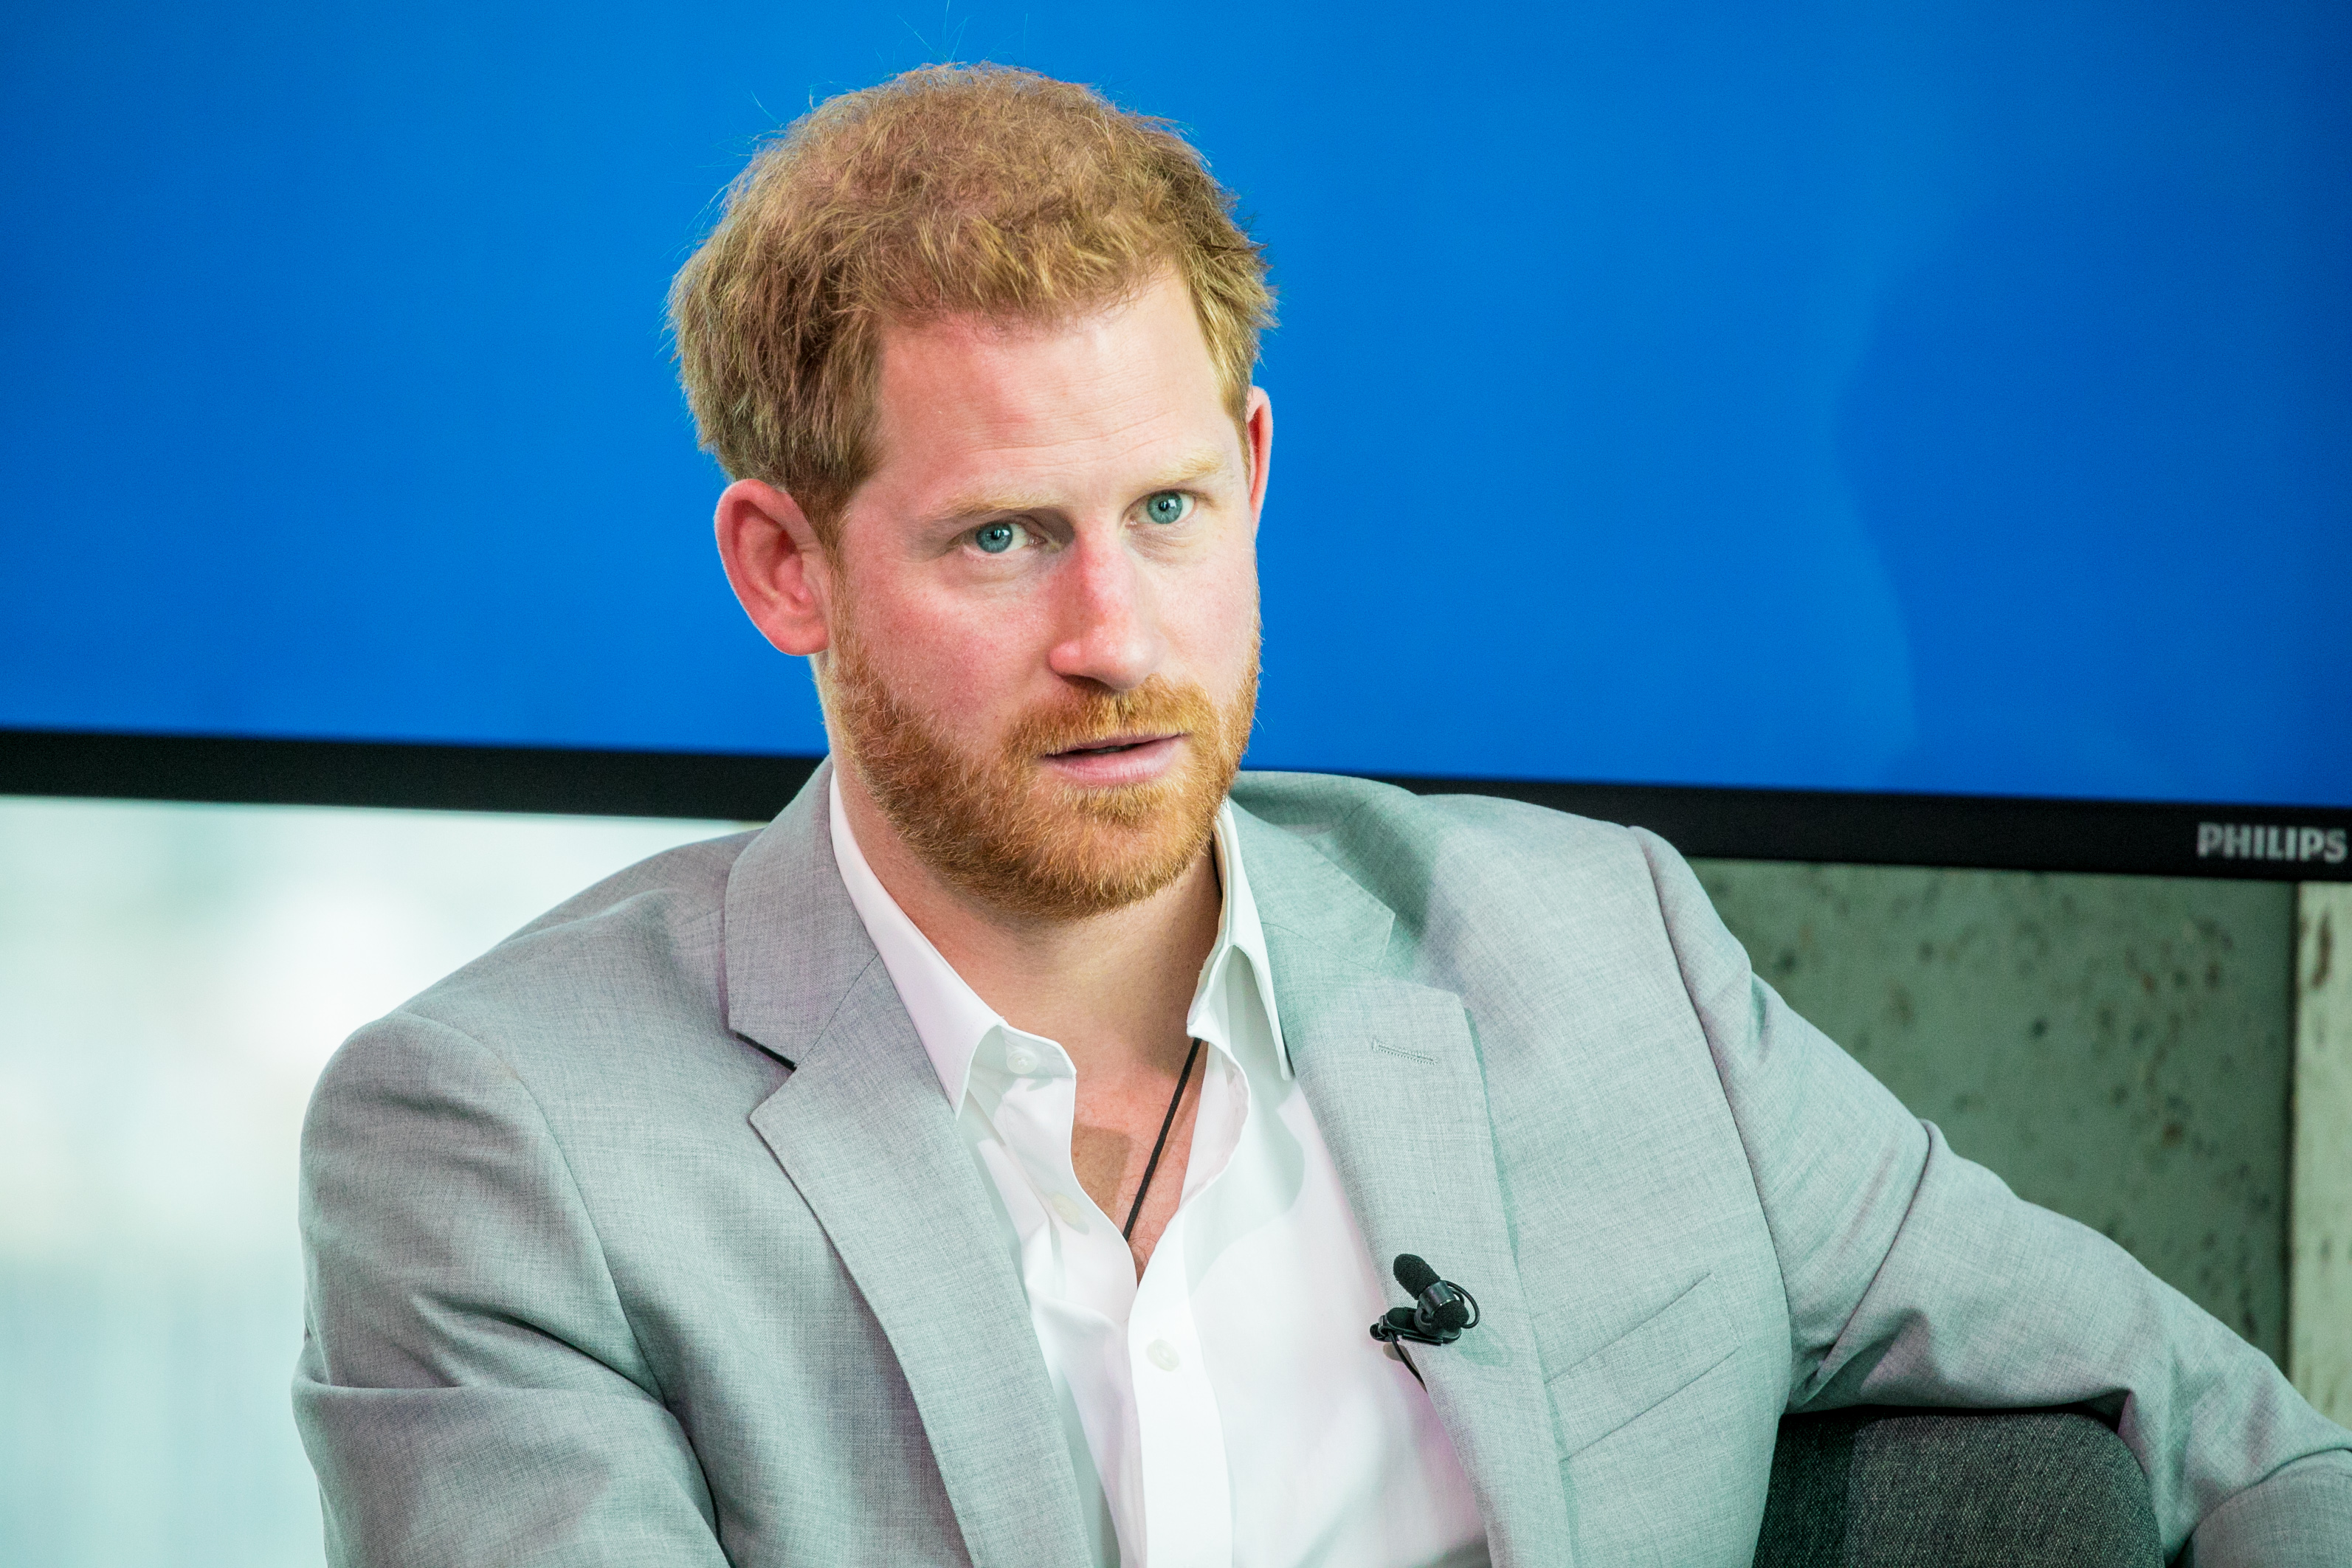 Prince Harry 'appalled' friend Gareth Thomas was forced to share HIV news